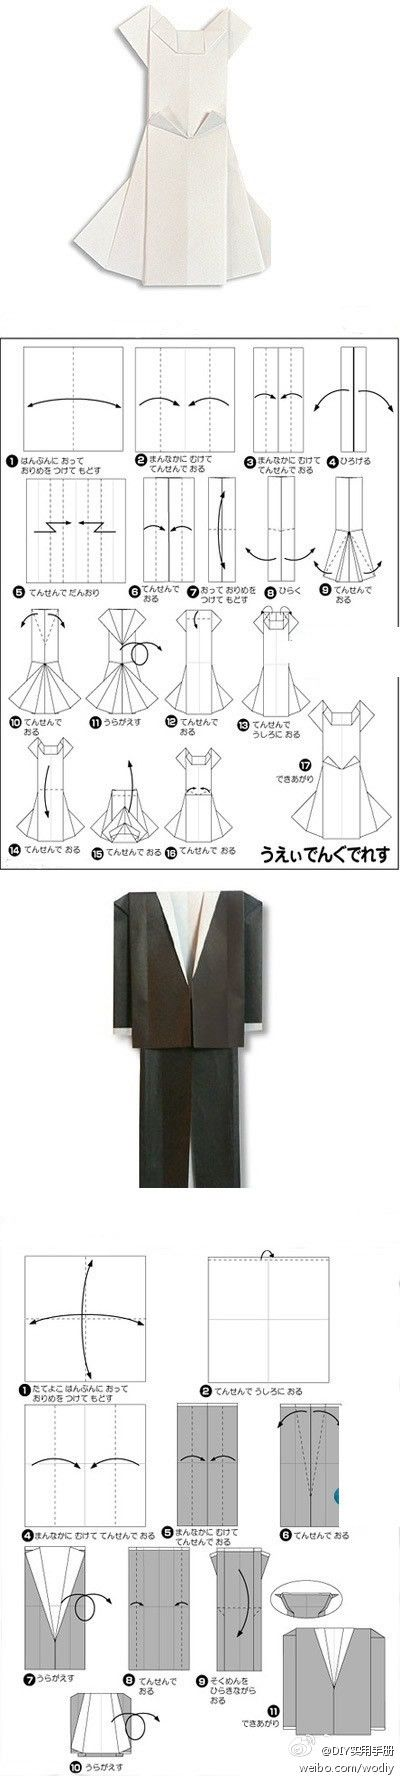 Origami Wedding Dress and Suit